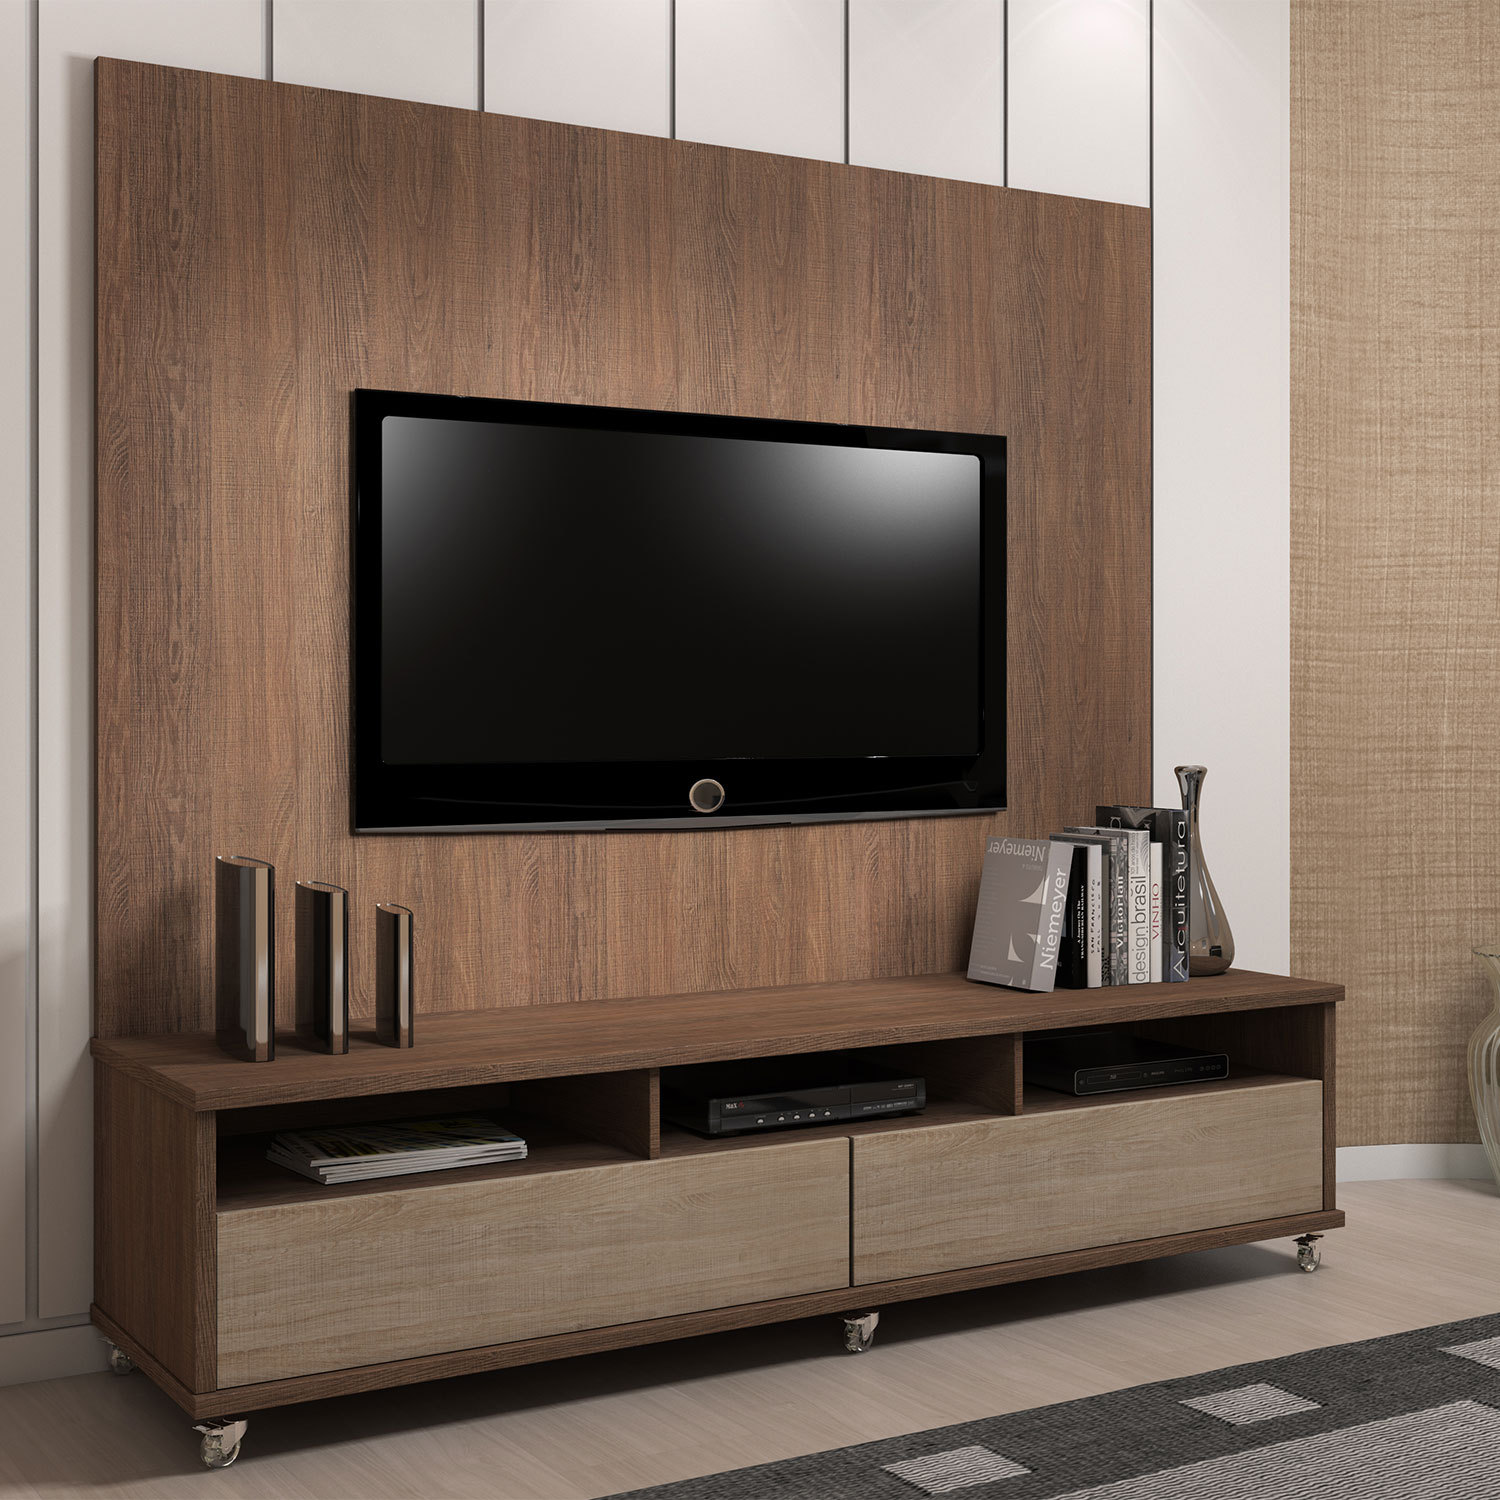 um lindo rack para tv mudo o visual tem fotos aqui revista das dicasrevista das dicas. Black Bedroom Furniture Sets. Home Design Ideas